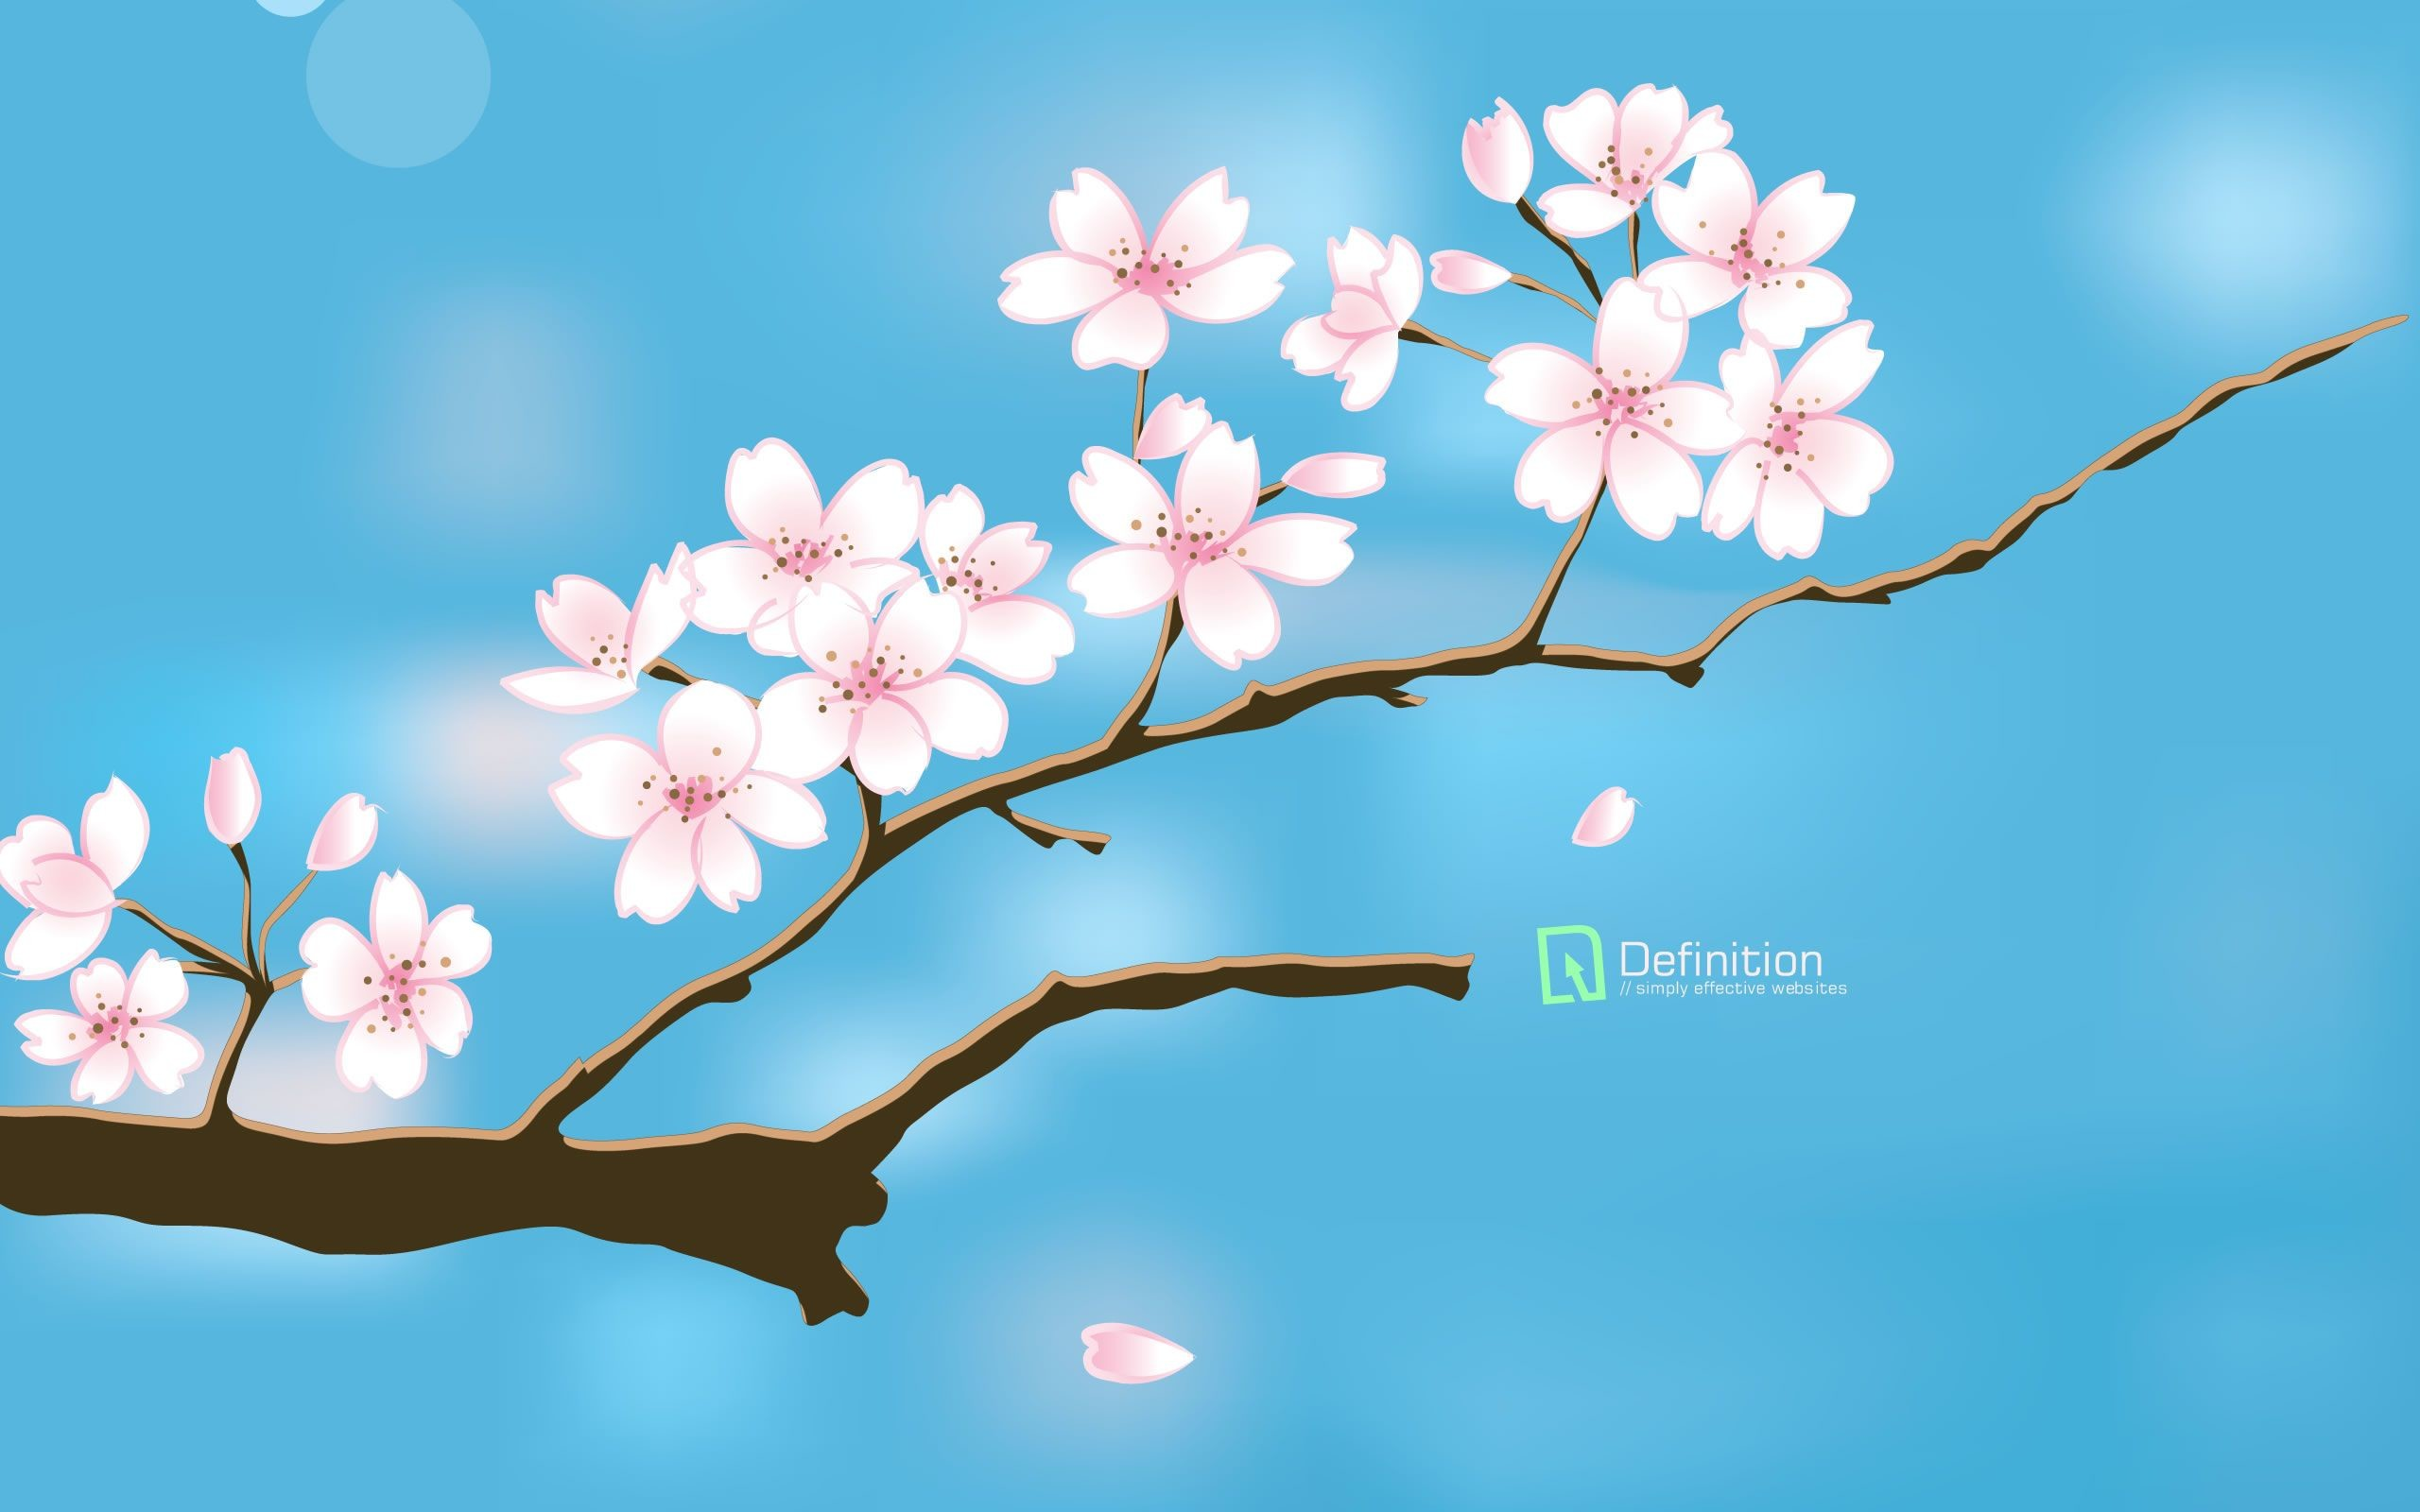 Res: 2560x1600, Photo of Spring HD - Wallpapers and Pictures Graphics for PC & Mac, Tablet,  Laptop, Mobile